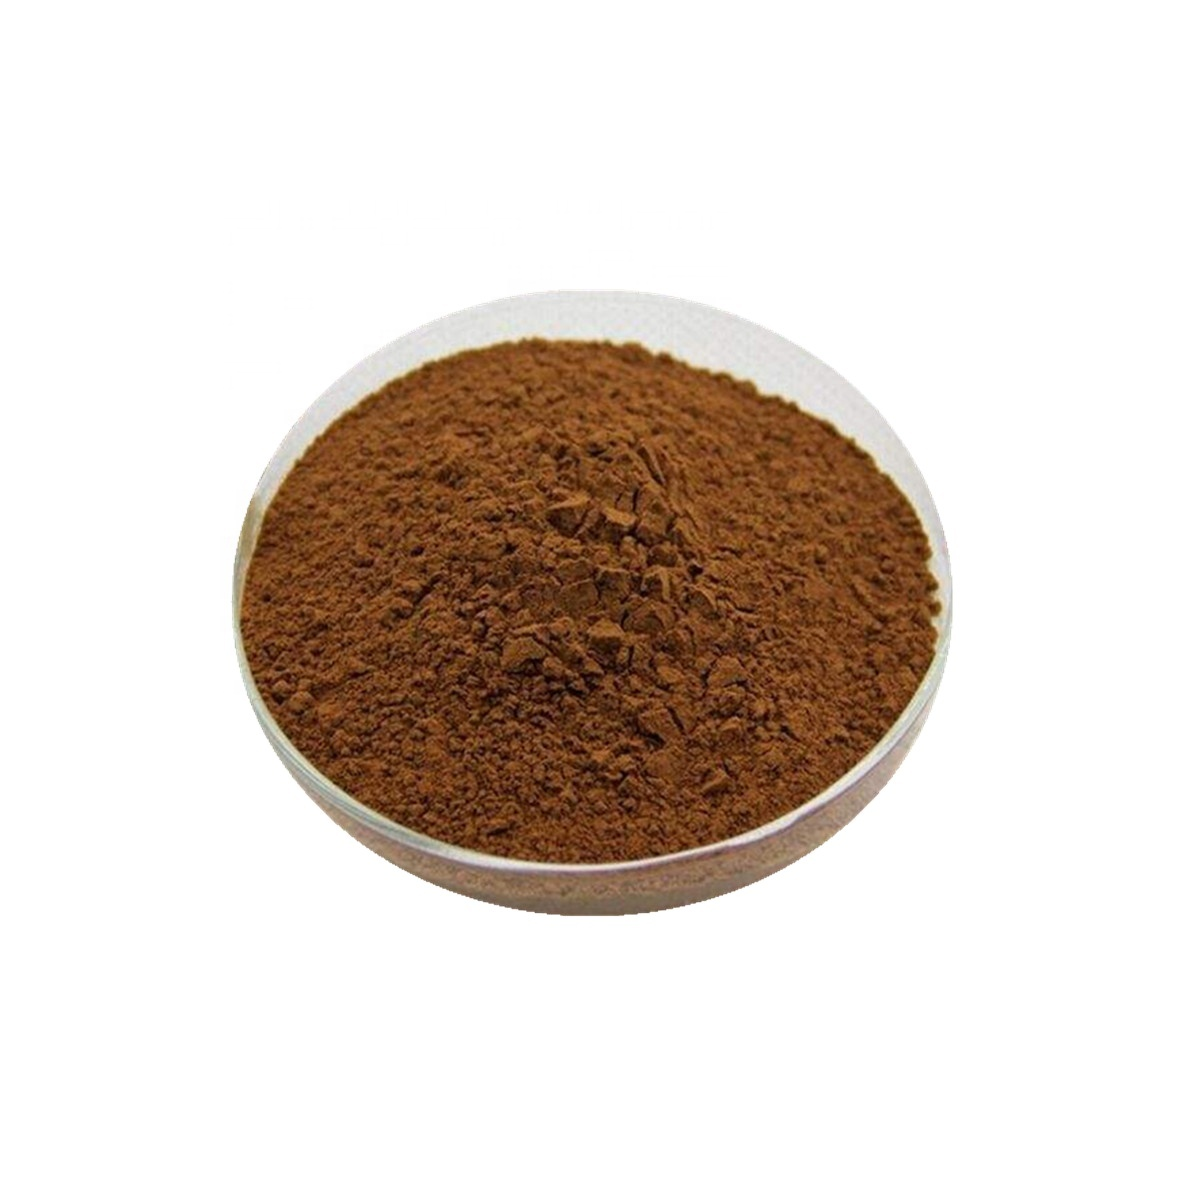 Mulberry Extract Powder brown